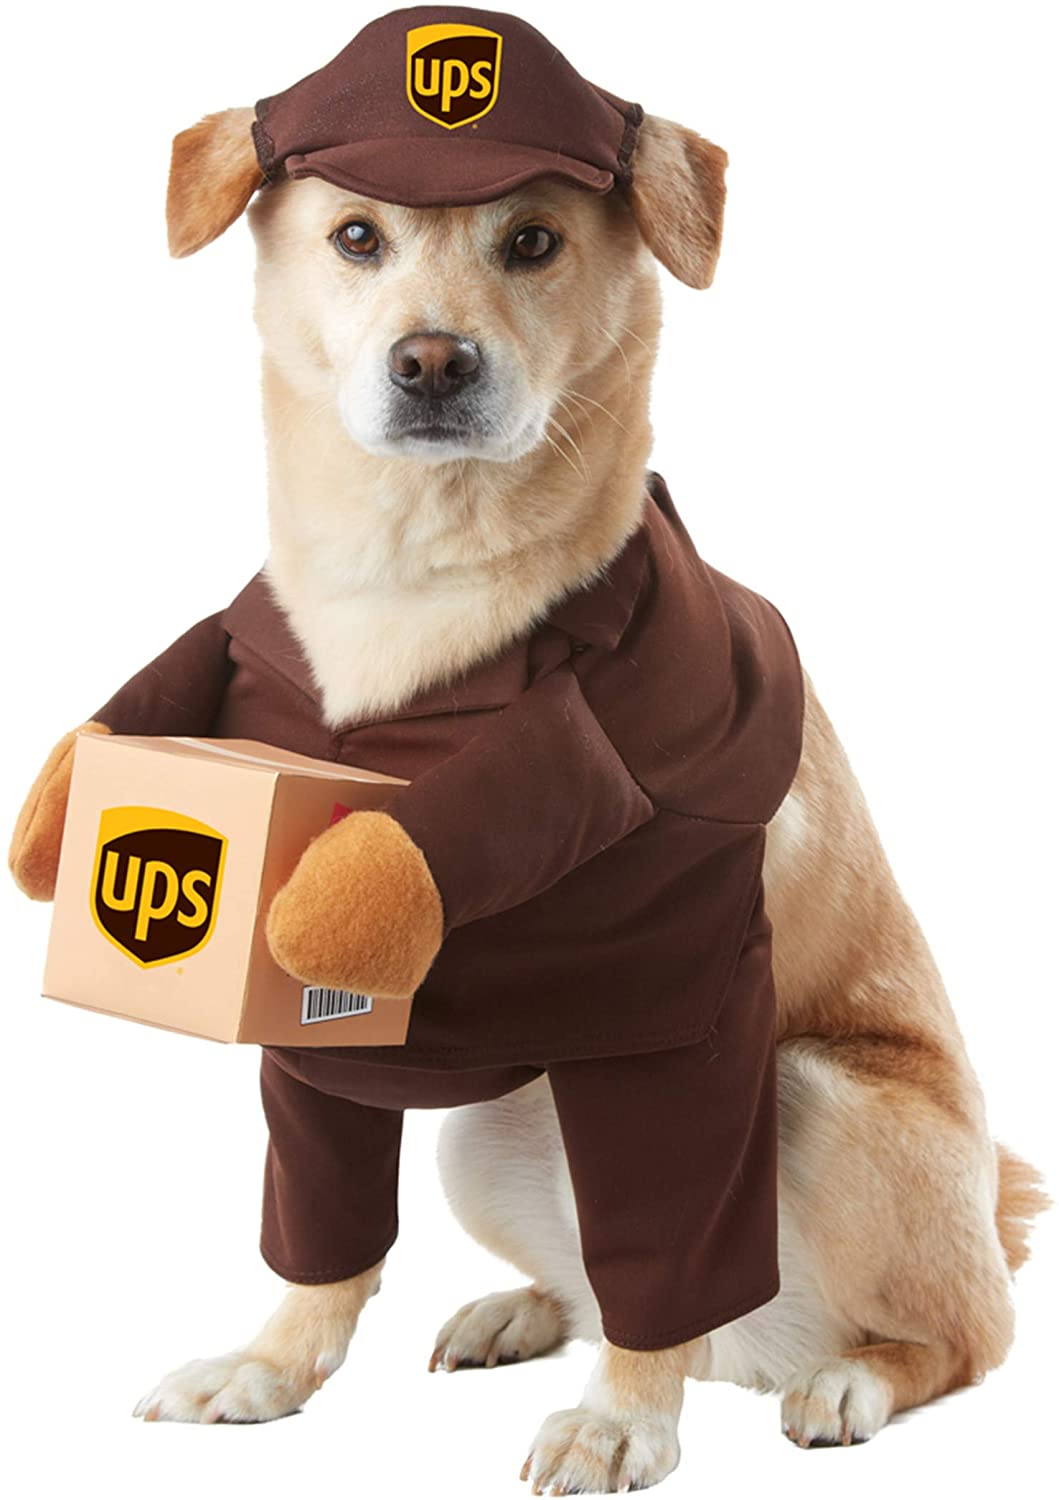 UPS Delivery Person Dog Halloween Costume